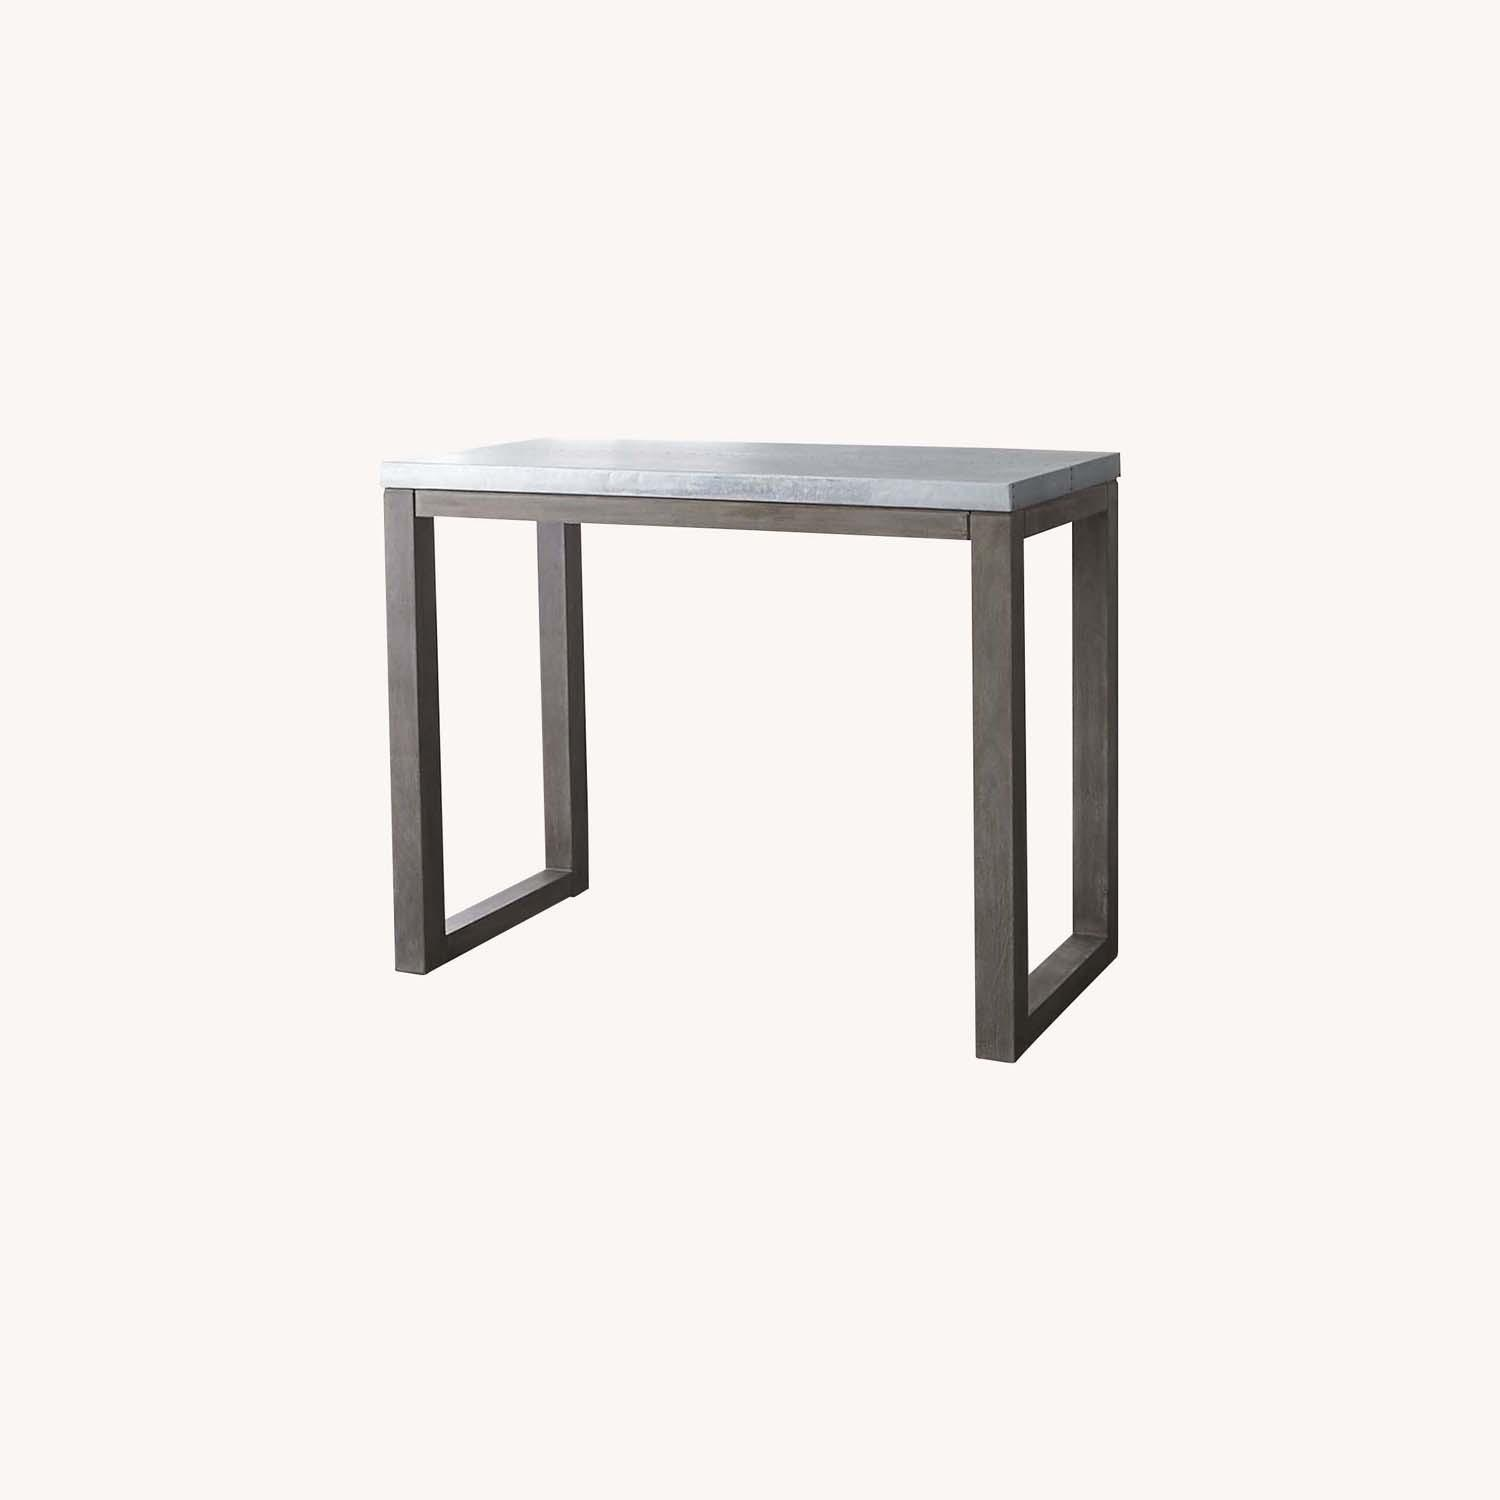 CB2 Stern High Counter Table - image-0